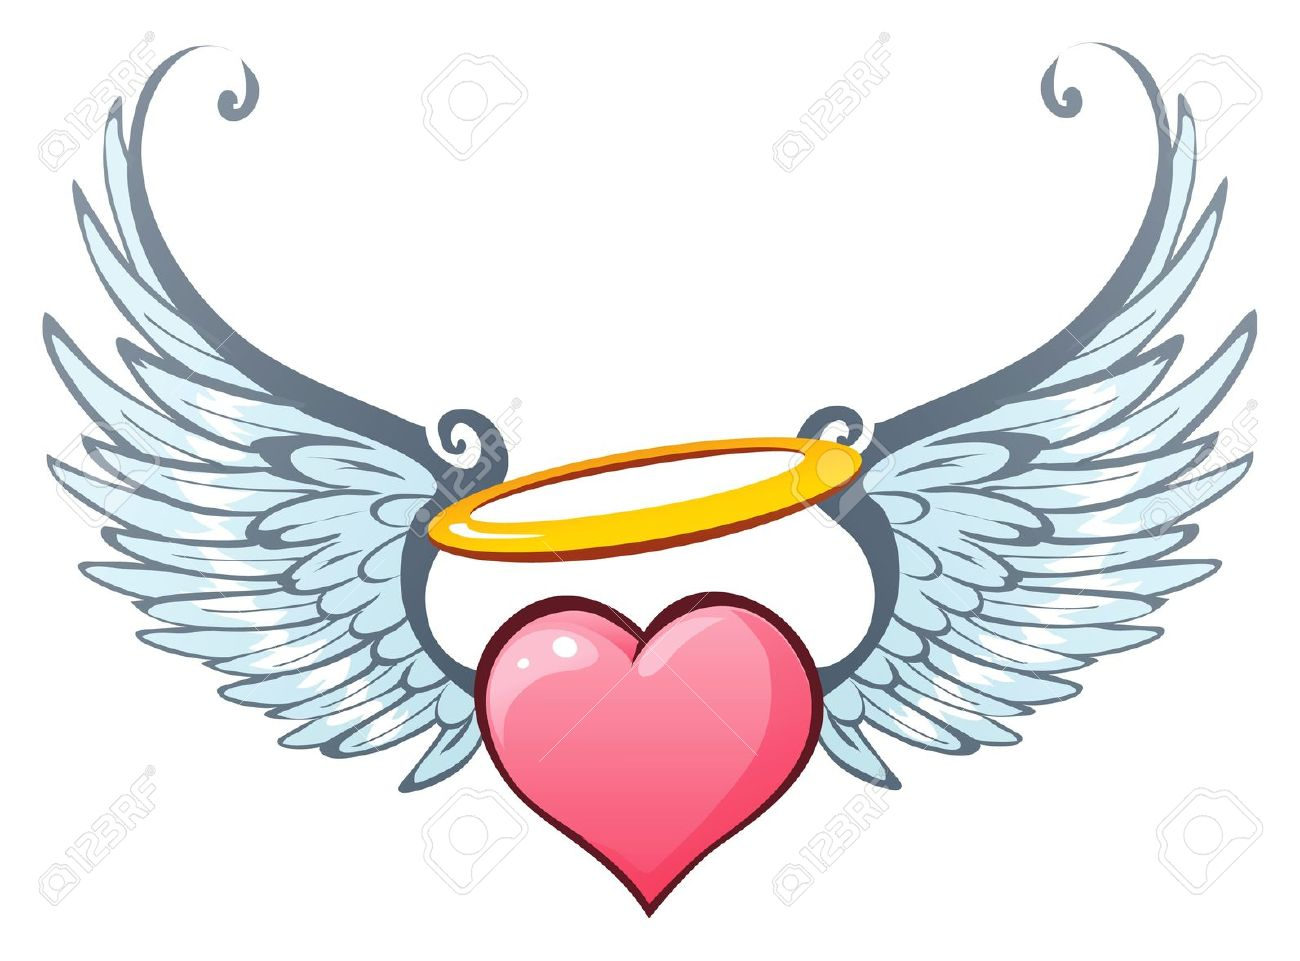 1300x961 Halo Clipart Heart Wing